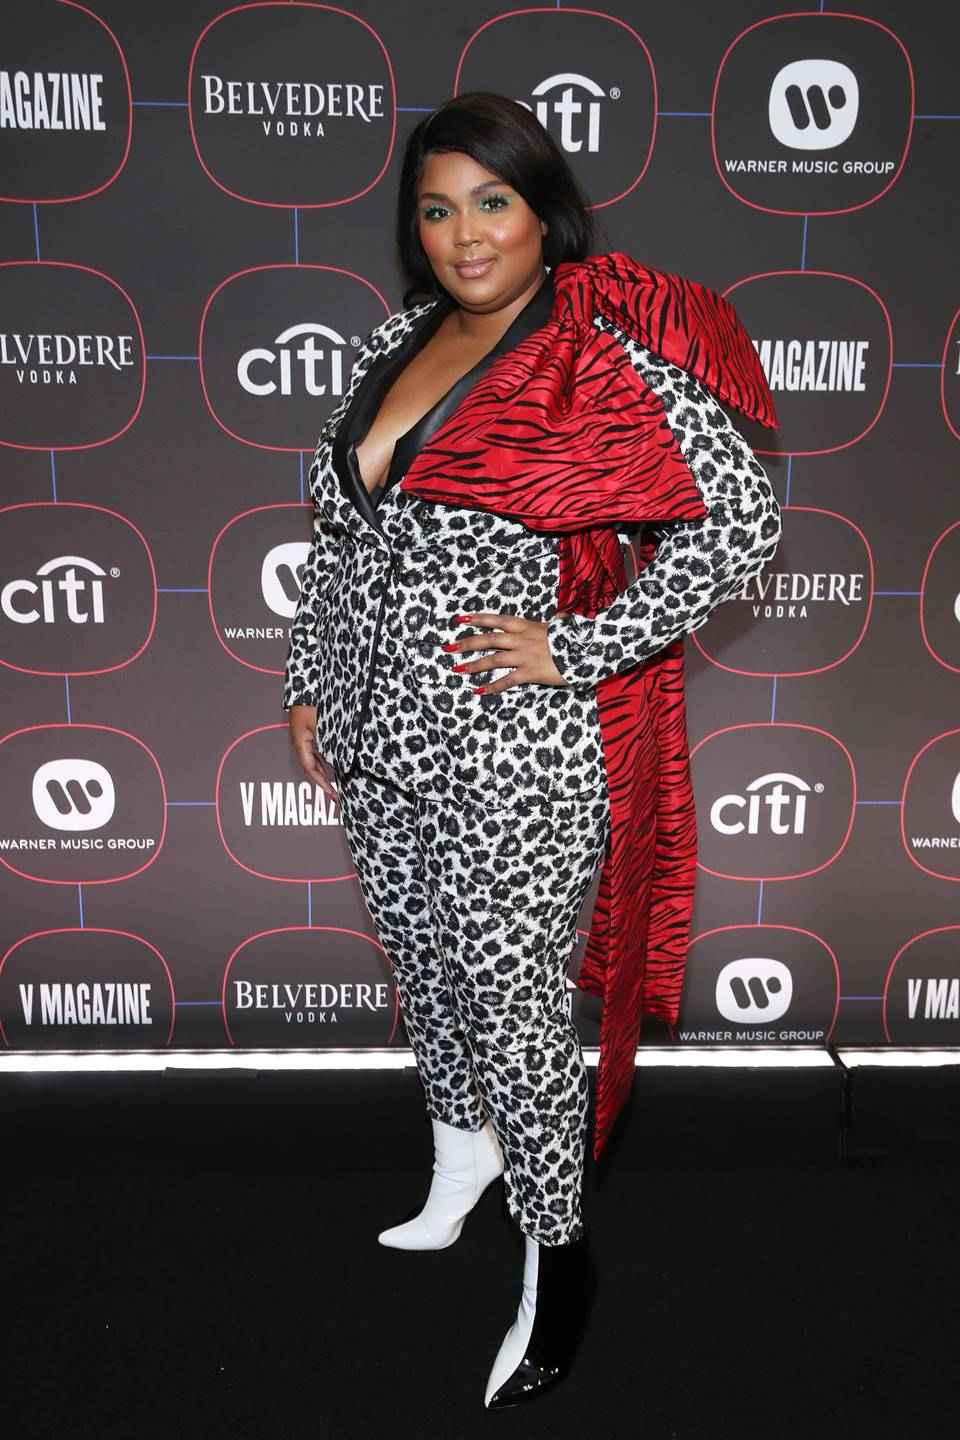 Randy Shropshire/Getty Images for Warner Music via Getty Images